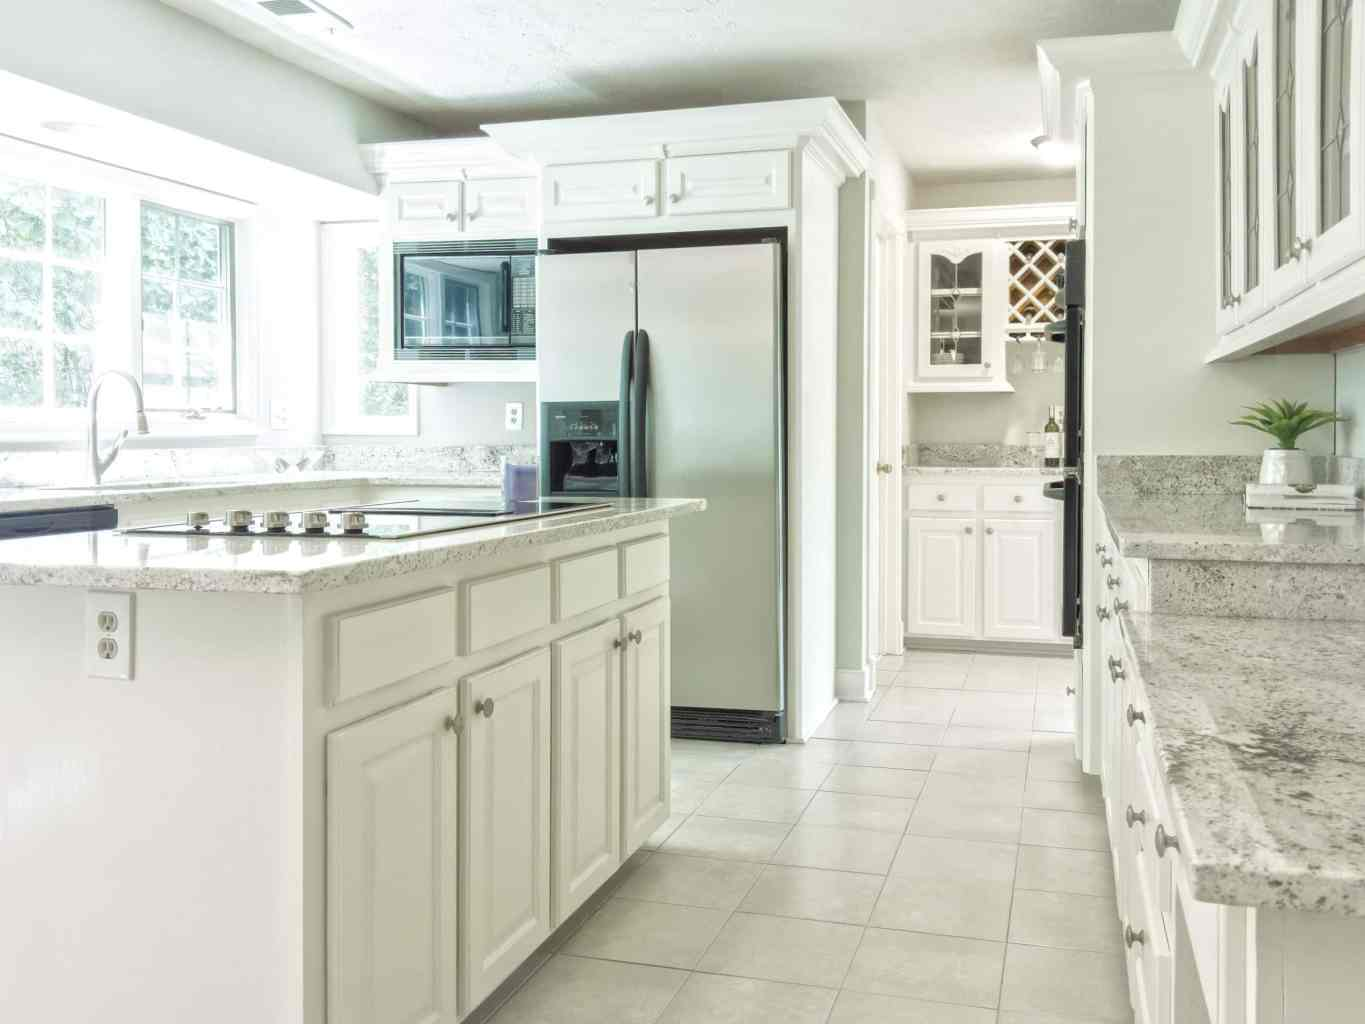 Clean and sanitized house. We provide move in move out cleanings for landlords in Chicago, IL.